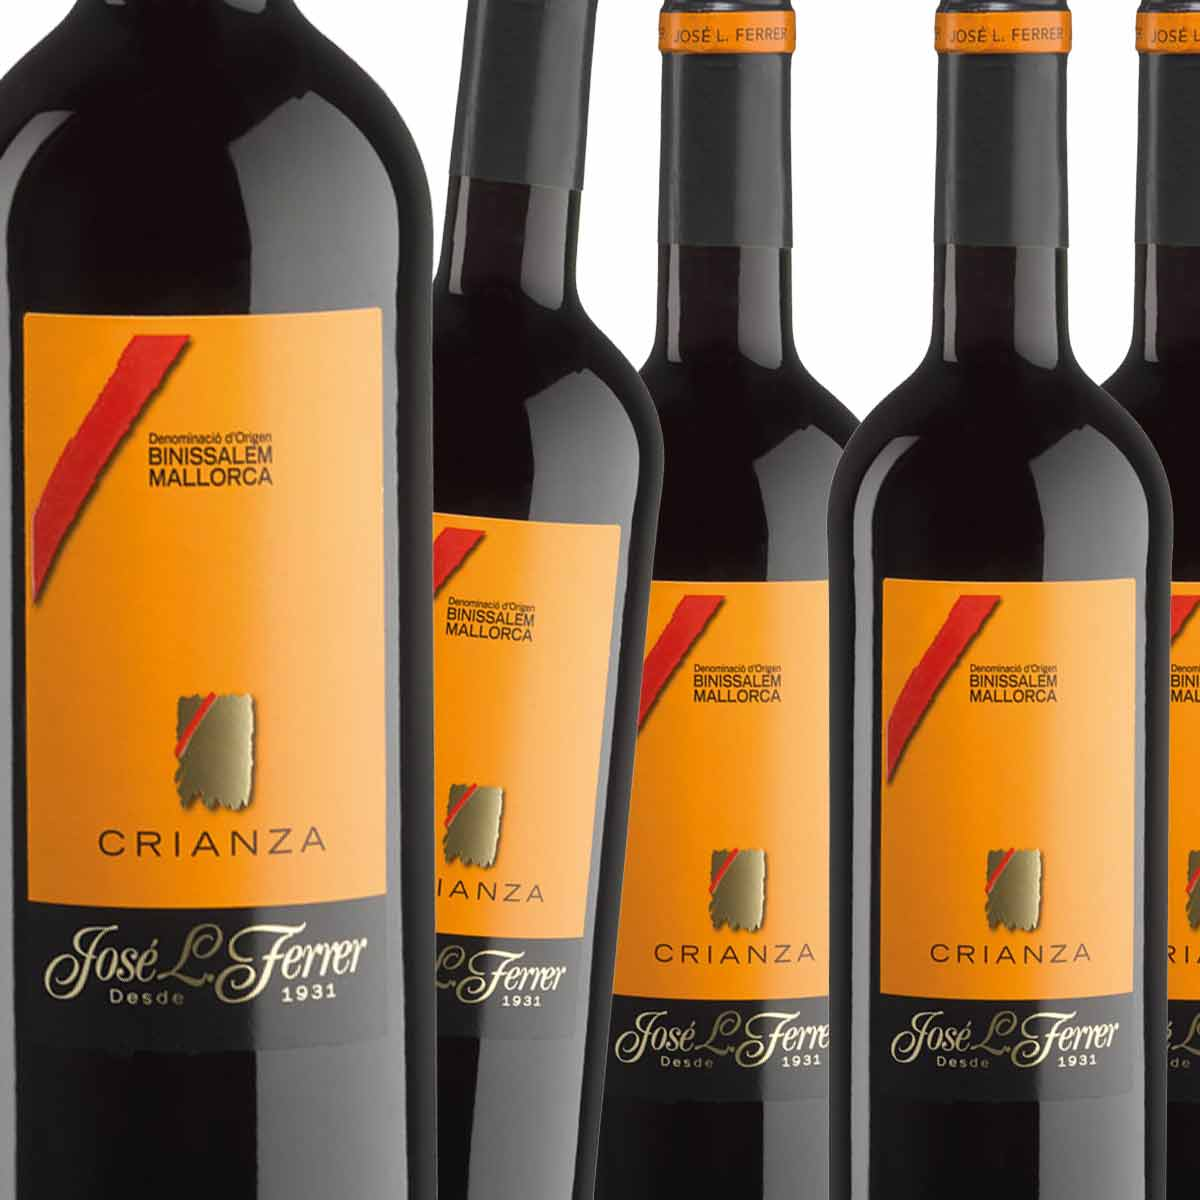 Box of 6, red wine Crianza, Bodegas Ferrer, D.O. Binissalem/ Majorca